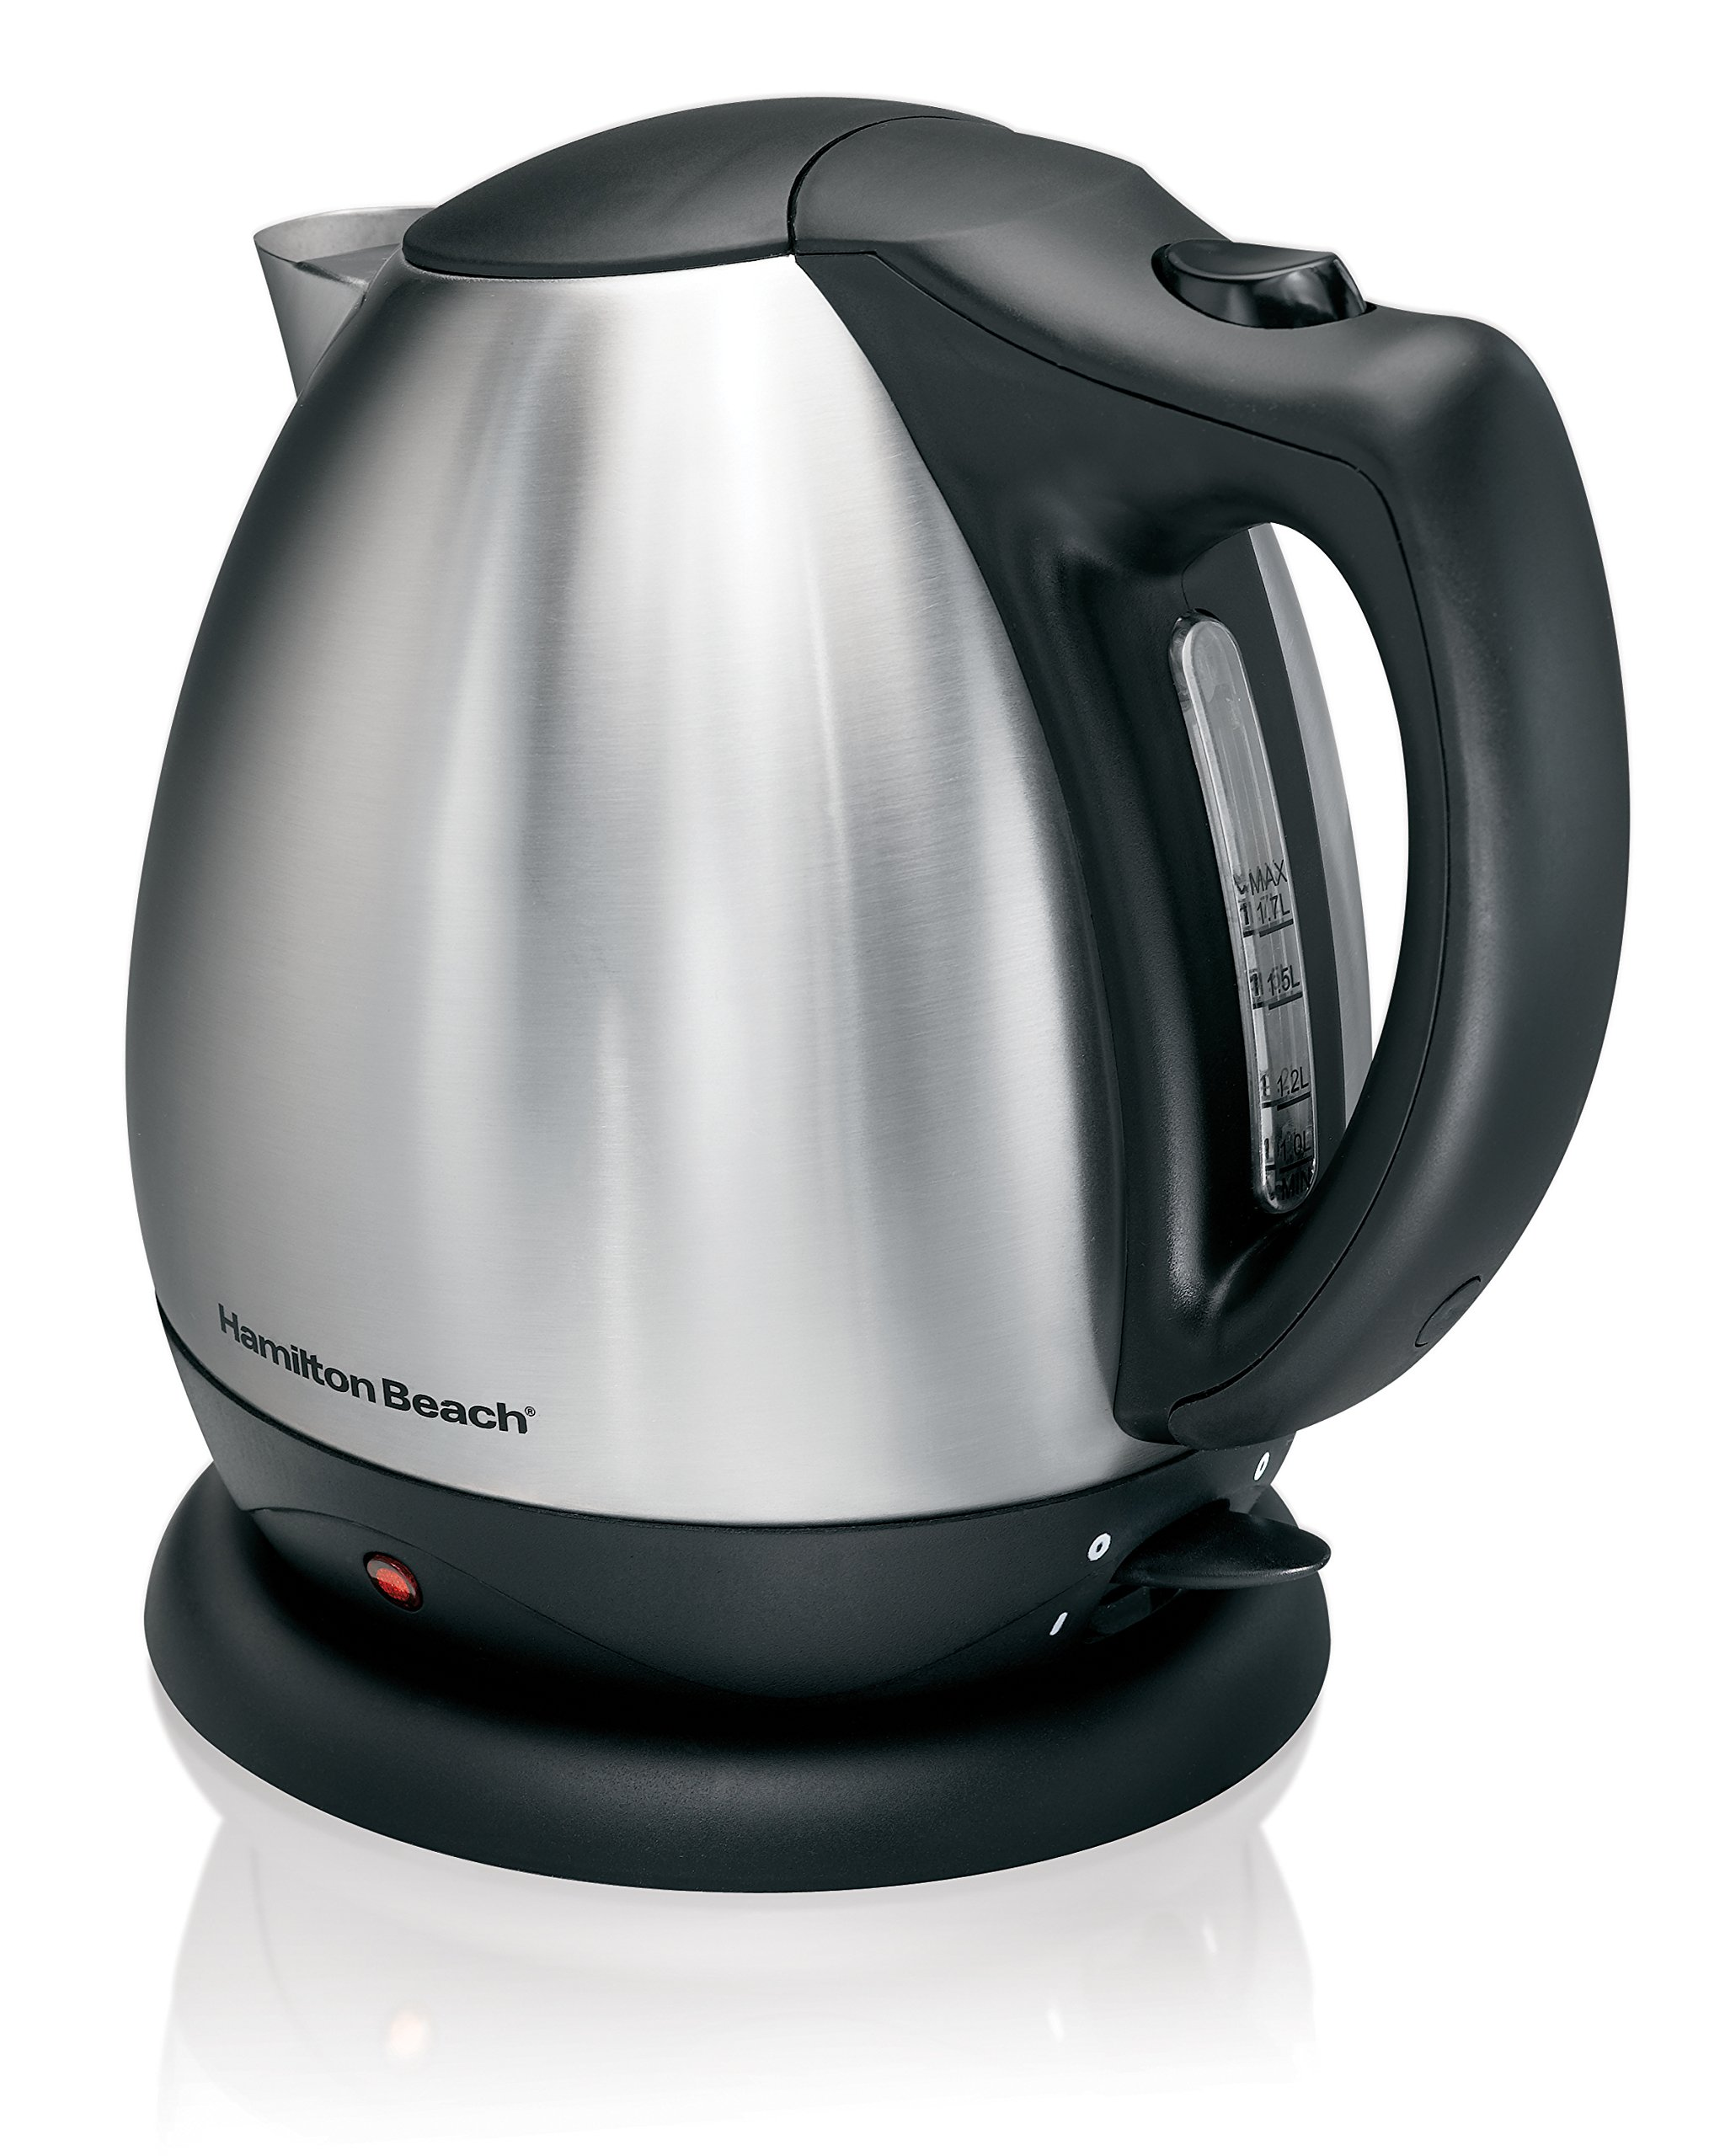 Hamilton Beach Stainless Steel 10-Cup Electric Kettle